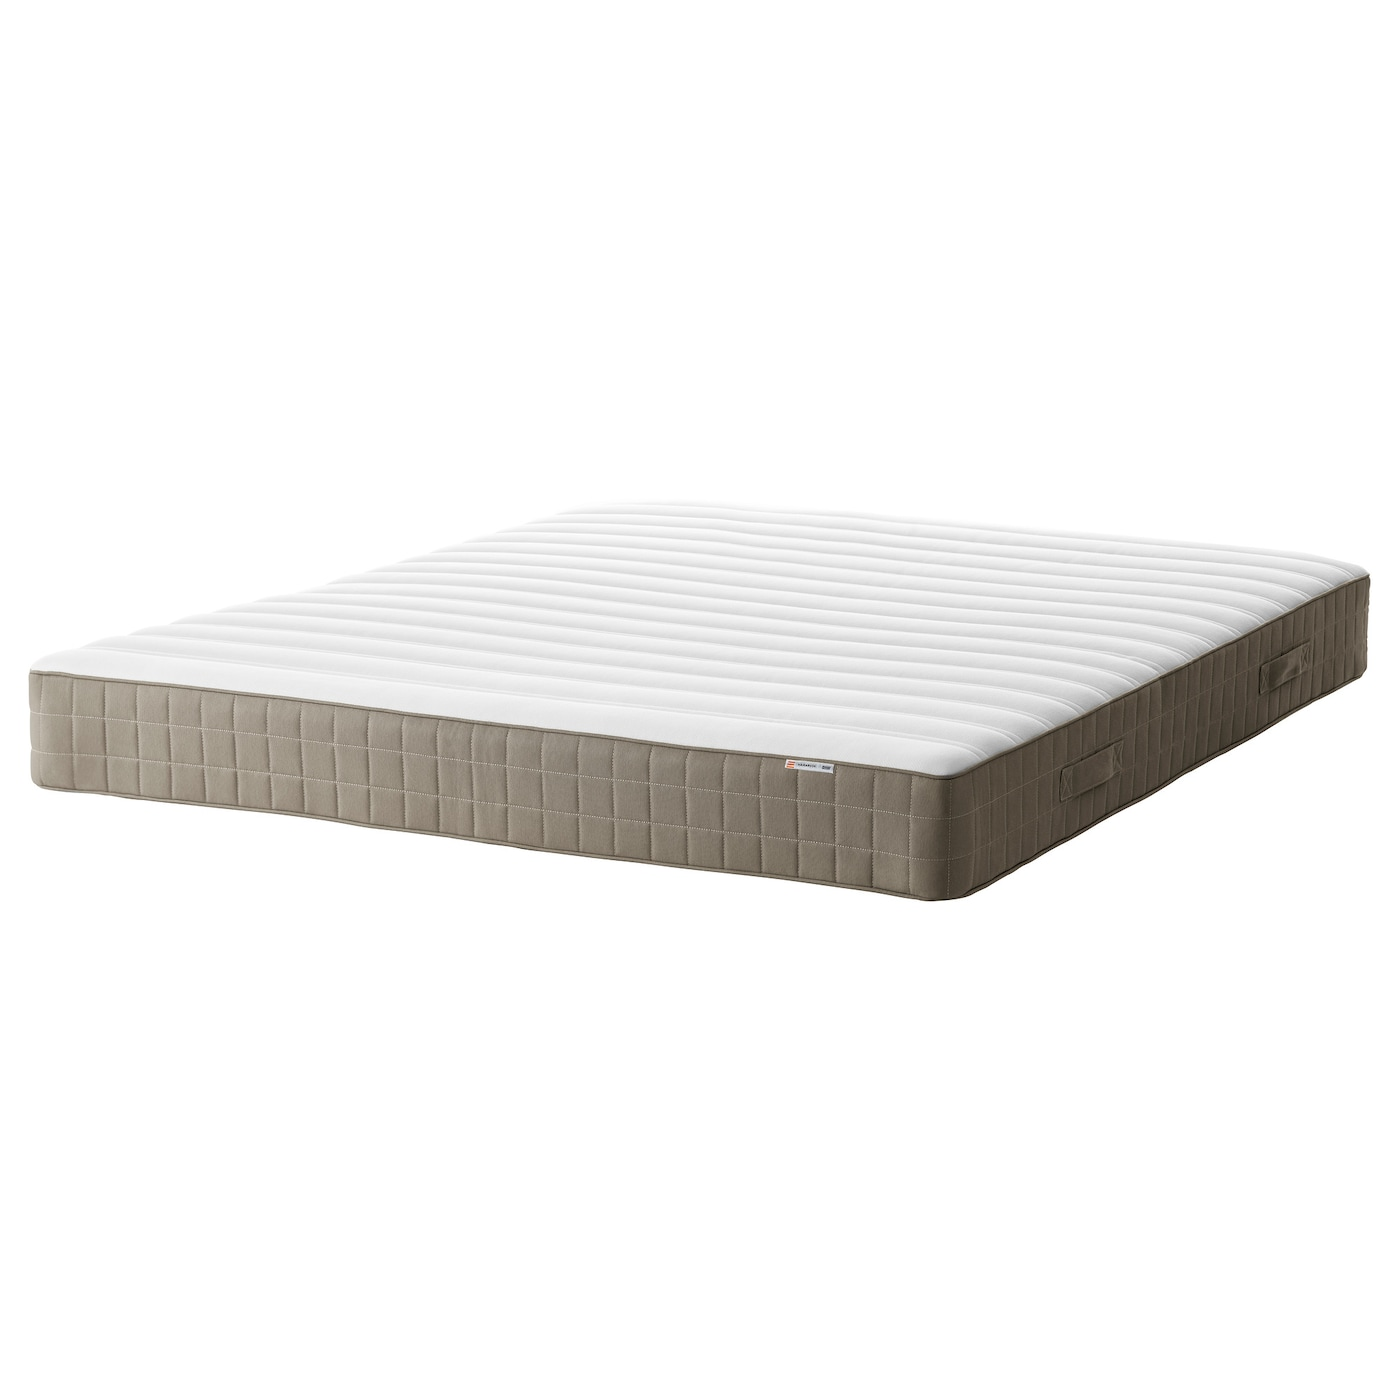 hamarvik matelas ressorts ferme beige fonc 160x200 cm ikea. Black Bedroom Furniture Sets. Home Design Ideas